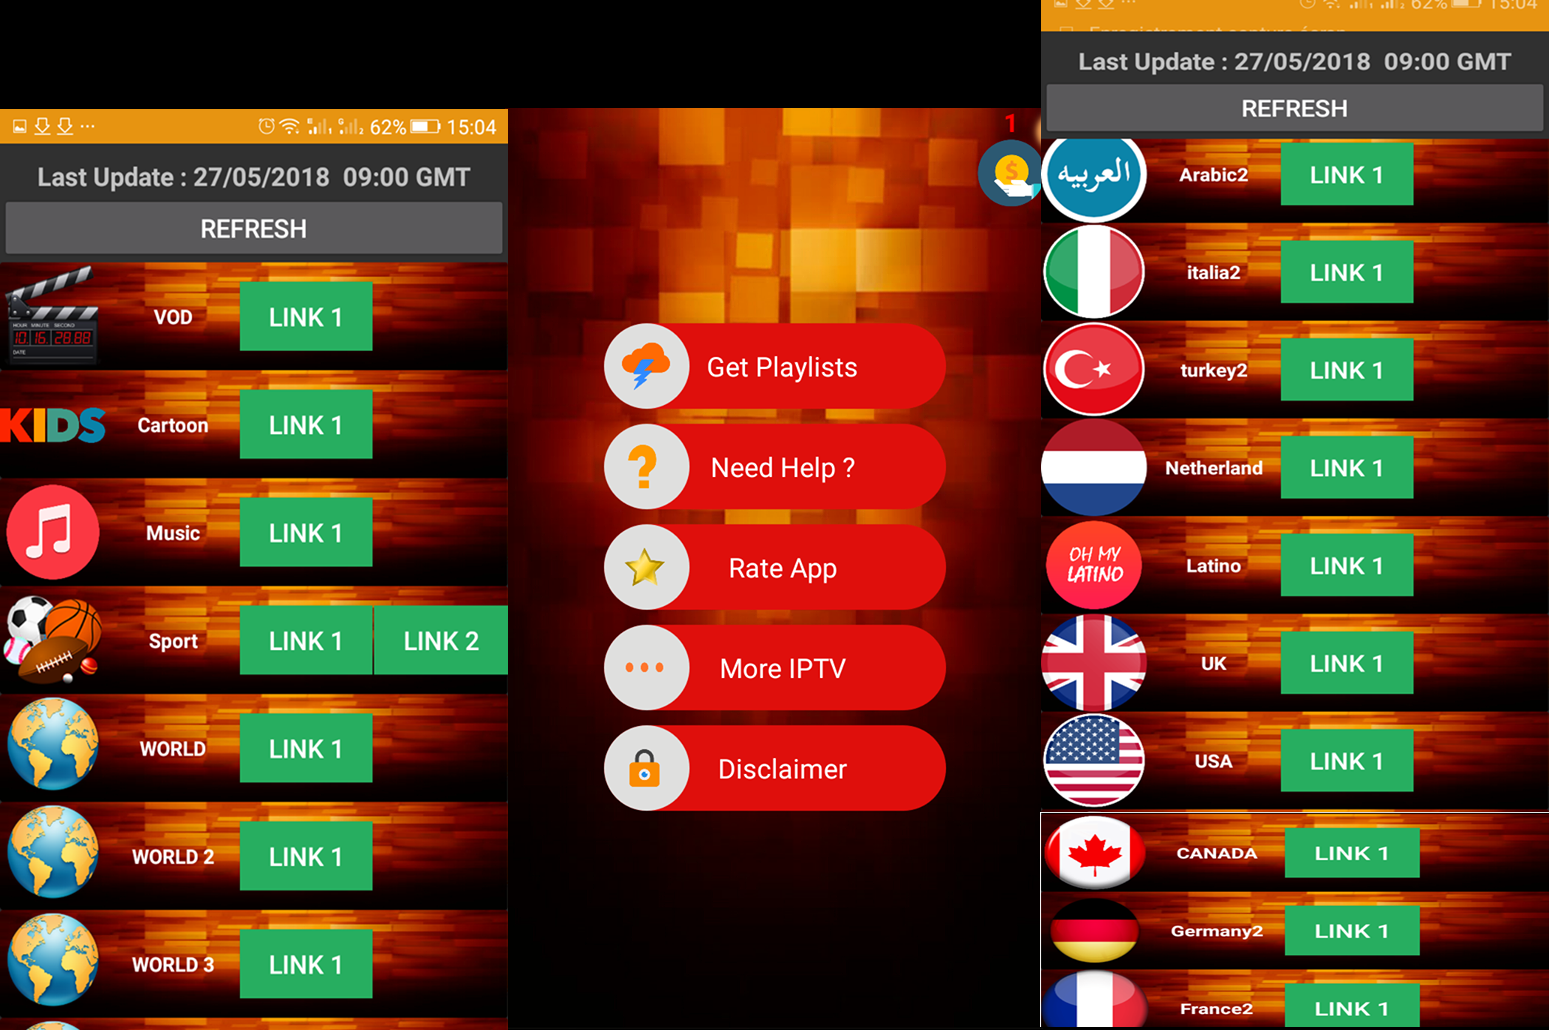 DAILY PLAYLIST APK : GET IPTV EVERY DAY FOR 24H - About Sat&Tech